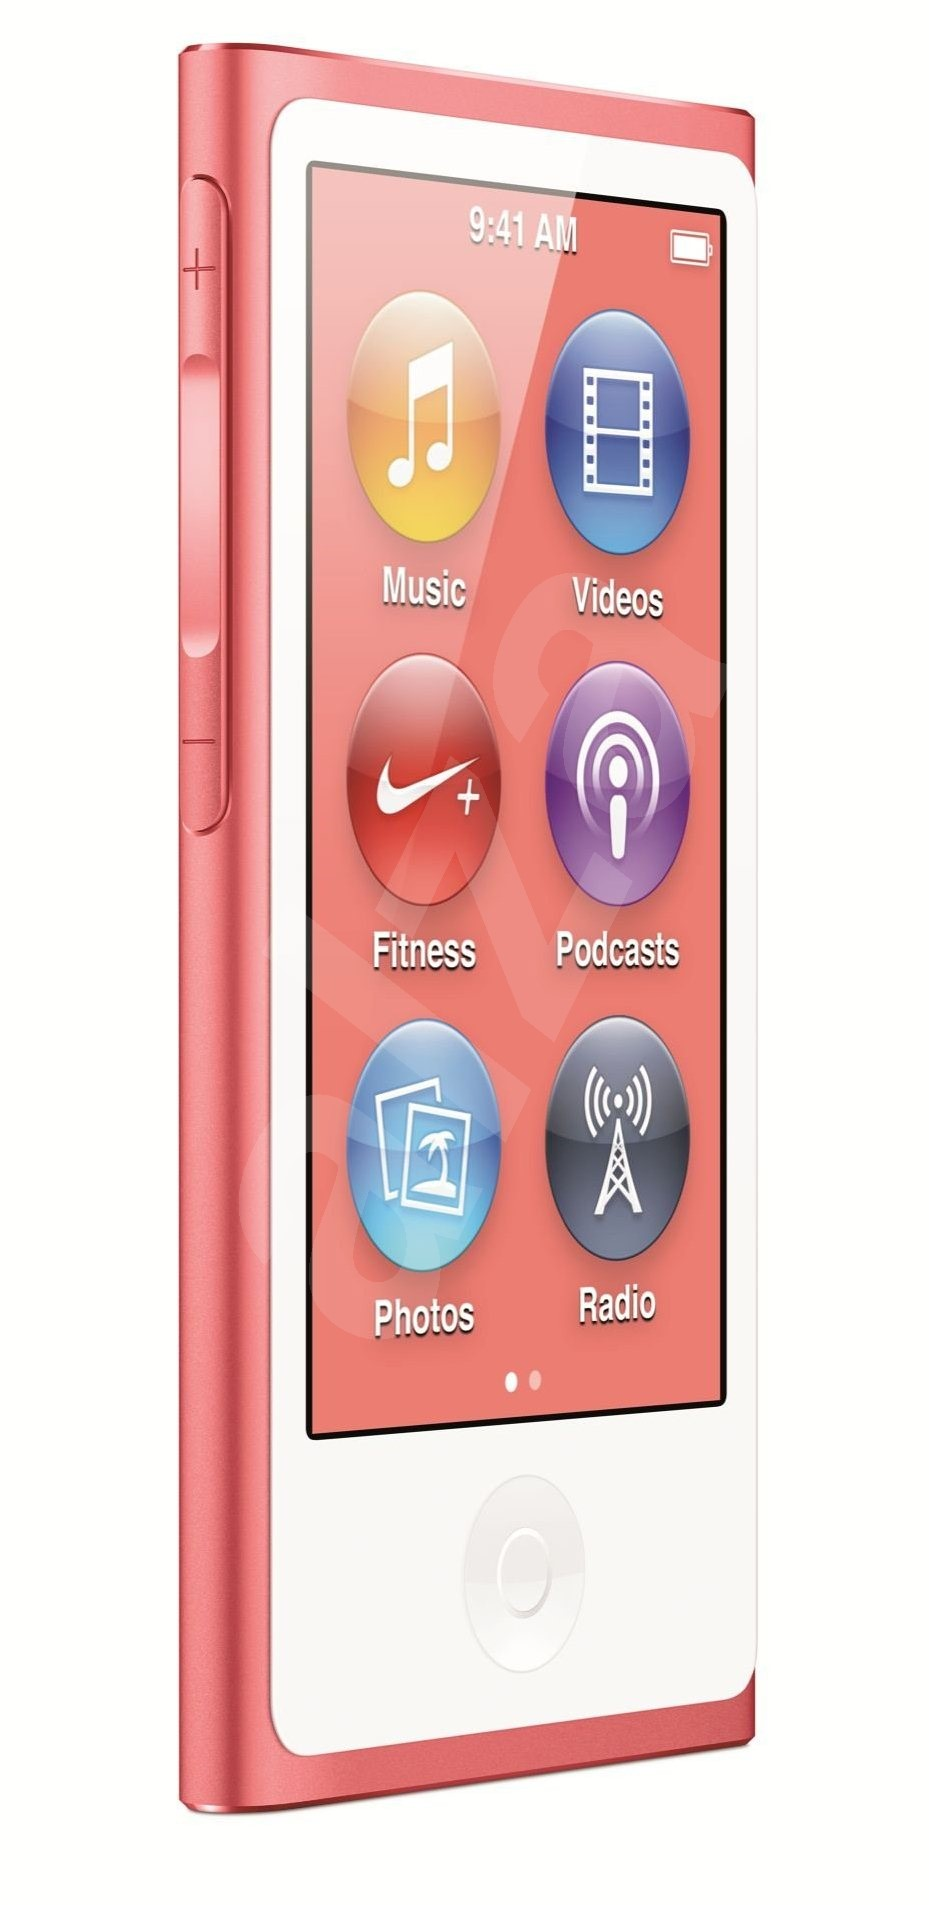 apple ipod nano 16gb pink 7th gen mp3 player. Black Bedroom Furniture Sets. Home Design Ideas